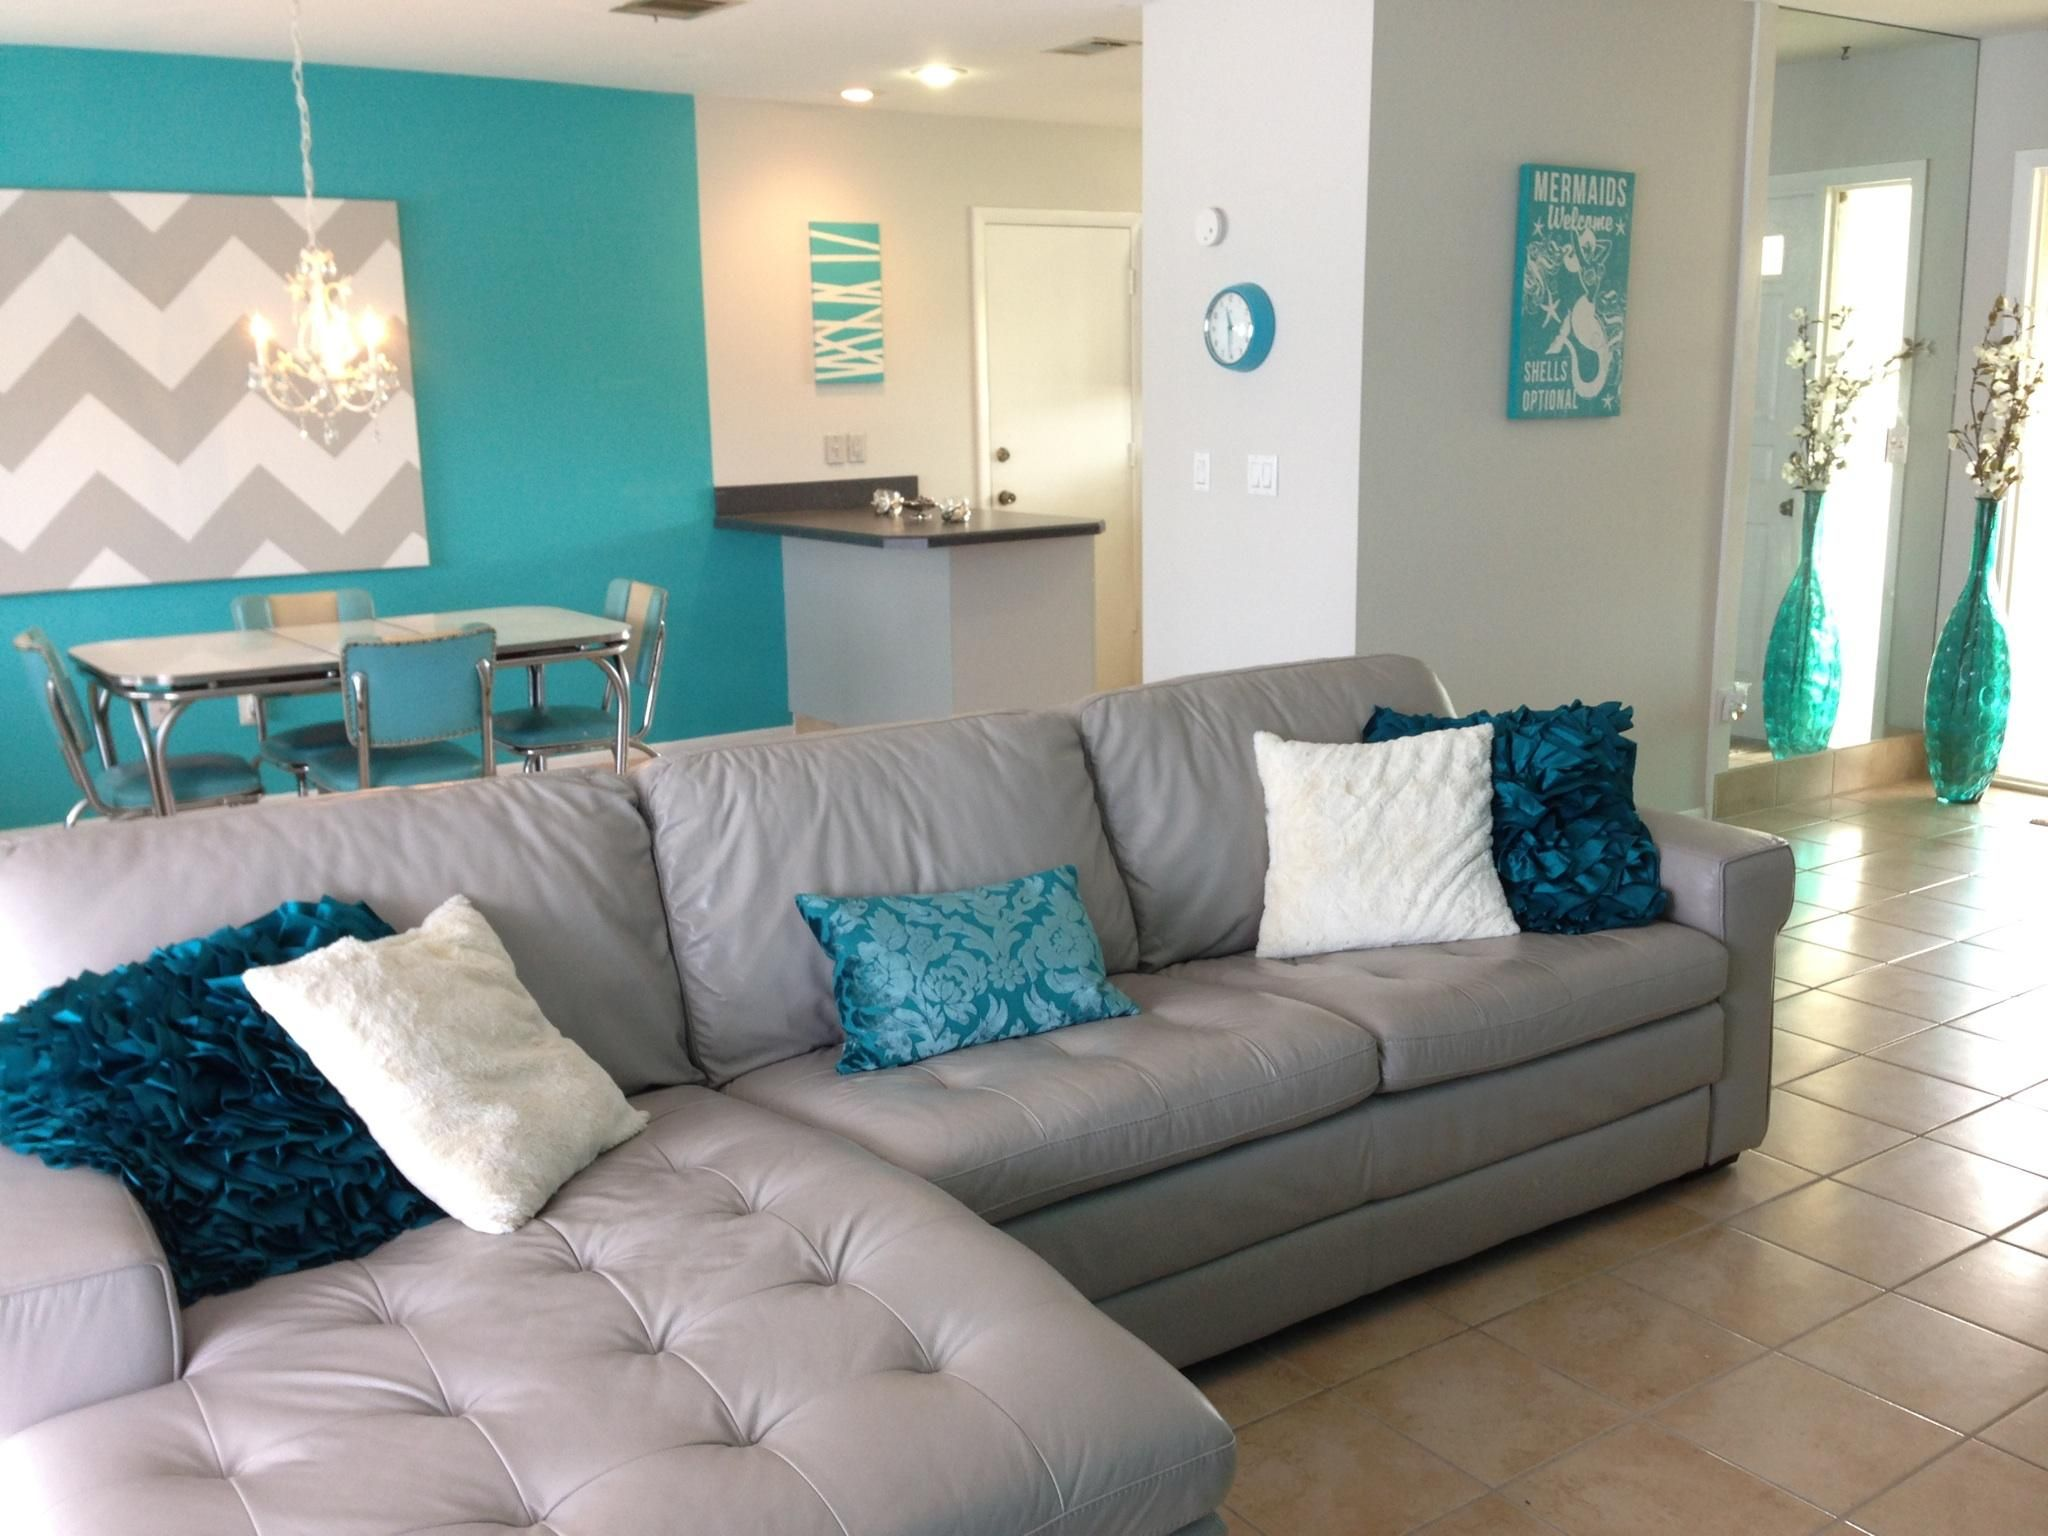 Room Ideas Florida Home Beach House Leather Couch Homemade Art Tan And Teal Living